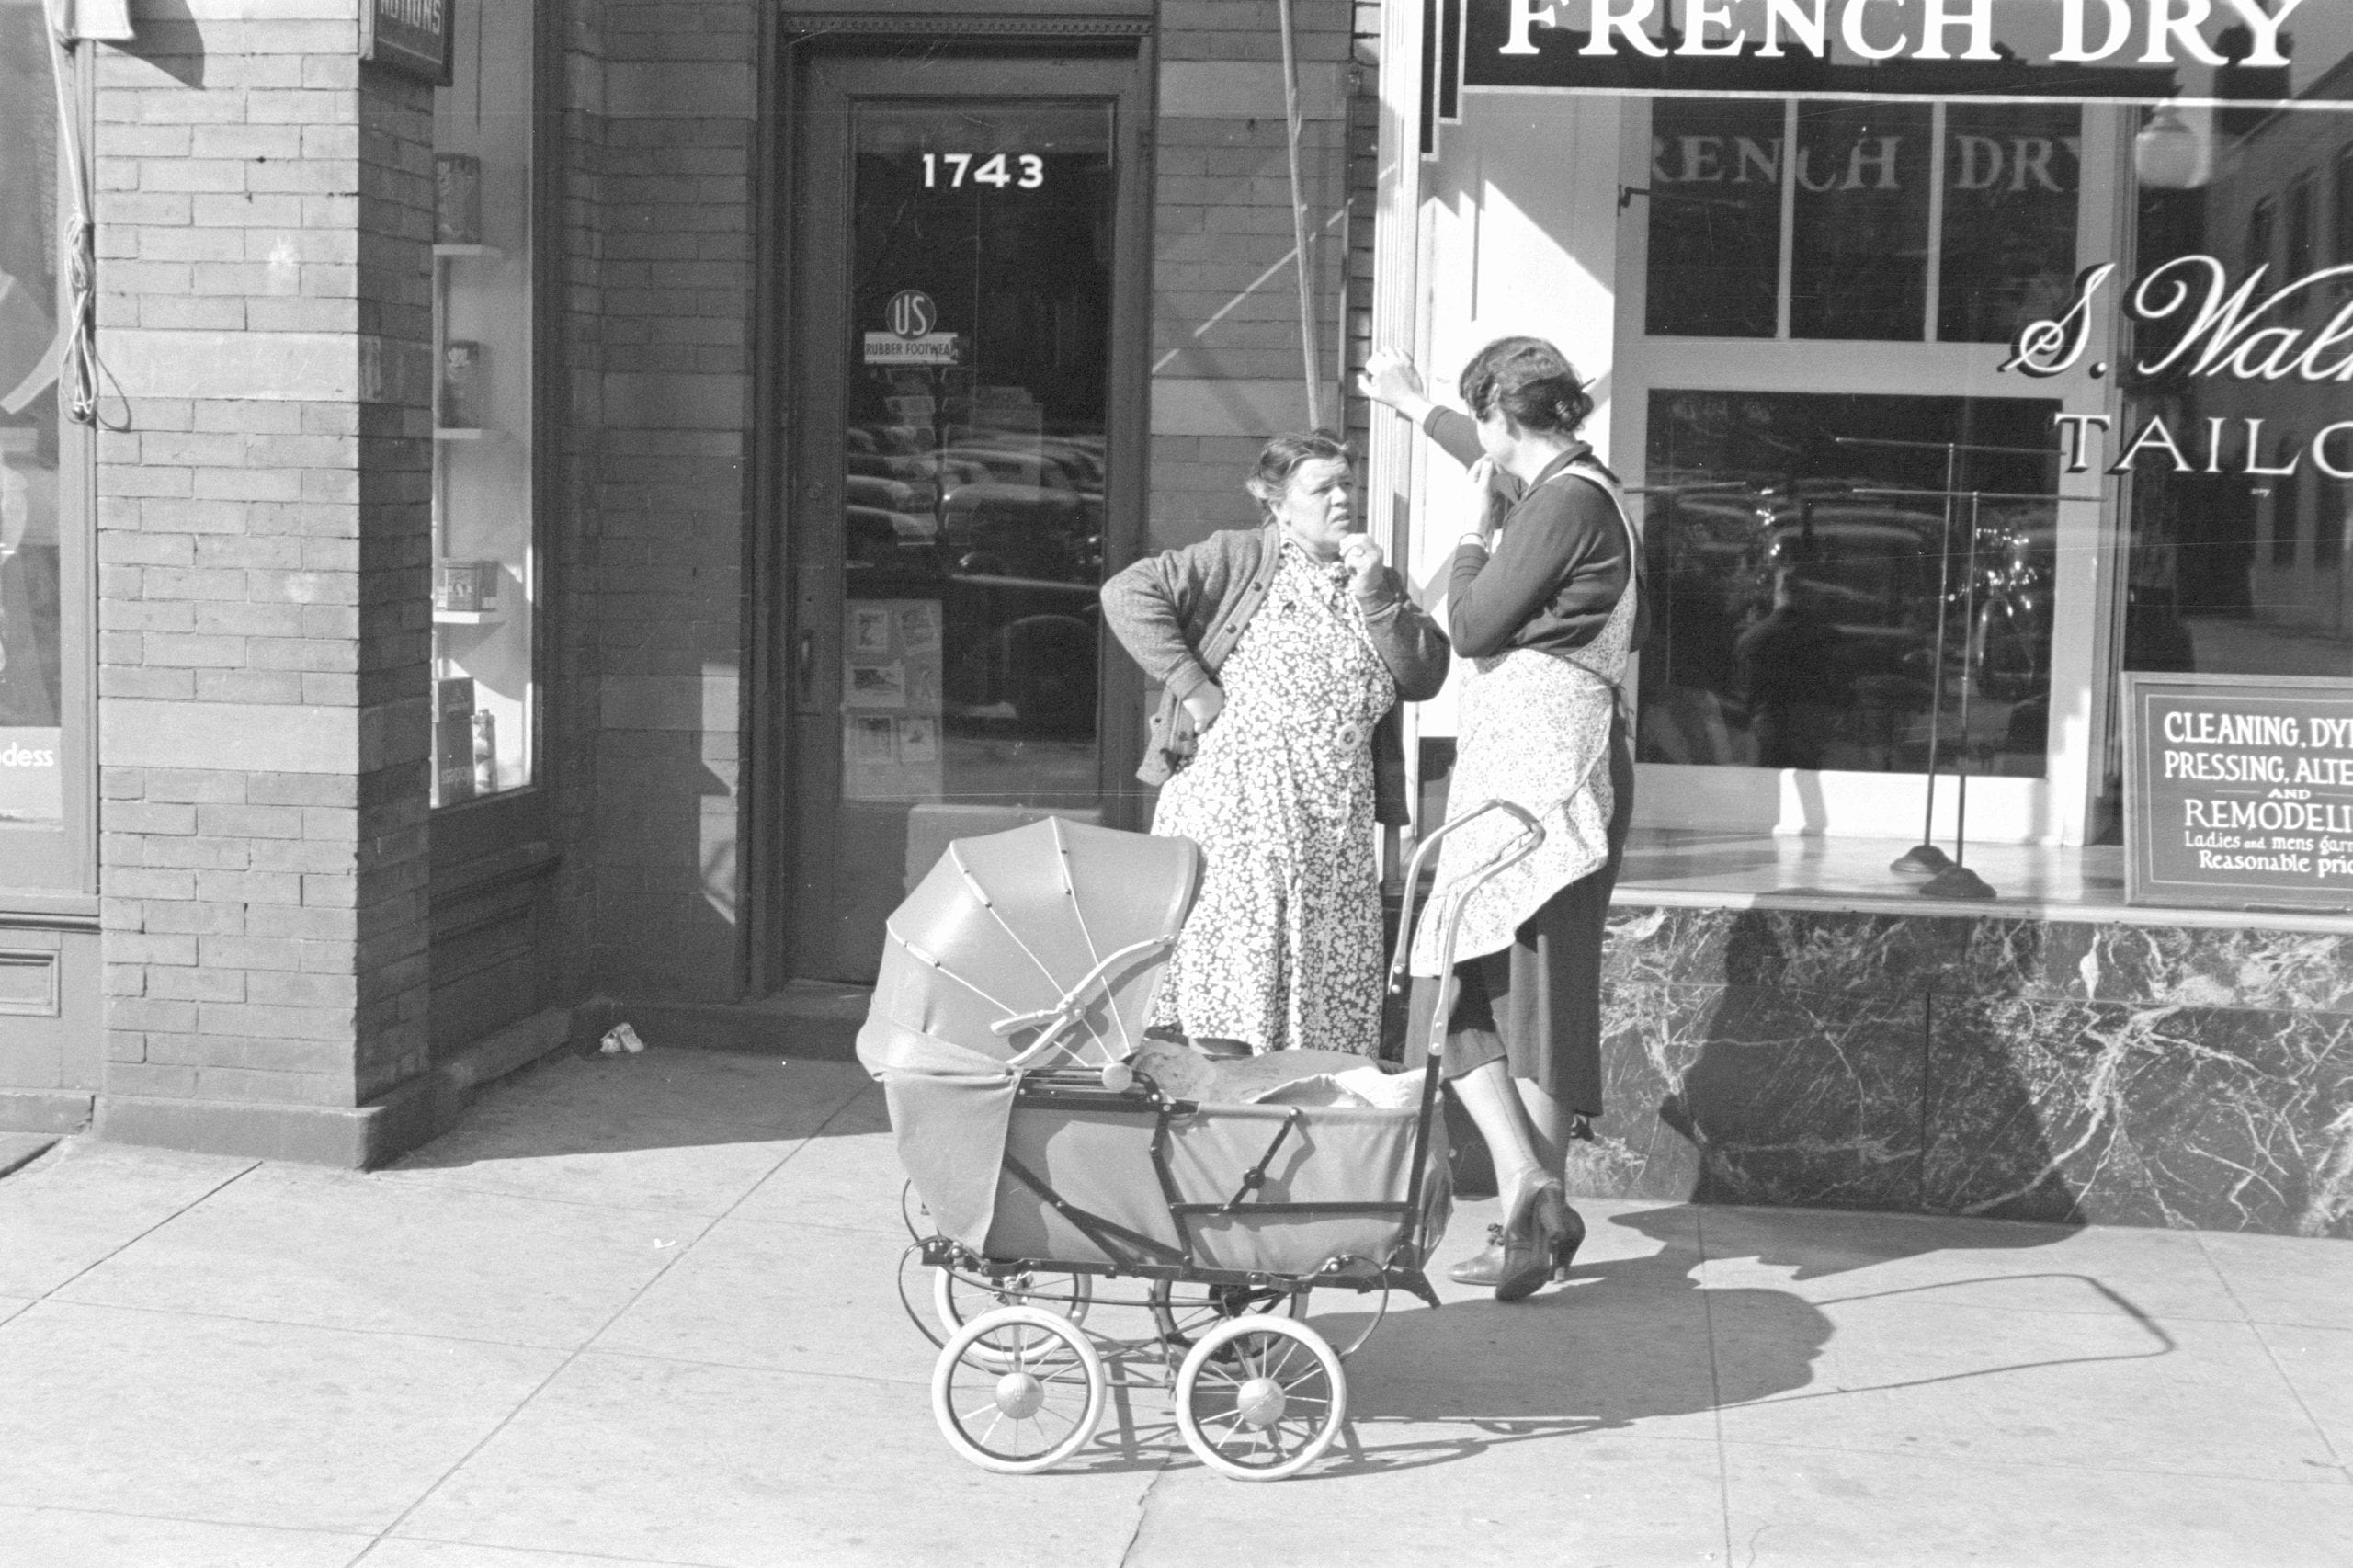 woman and carriage in front of store